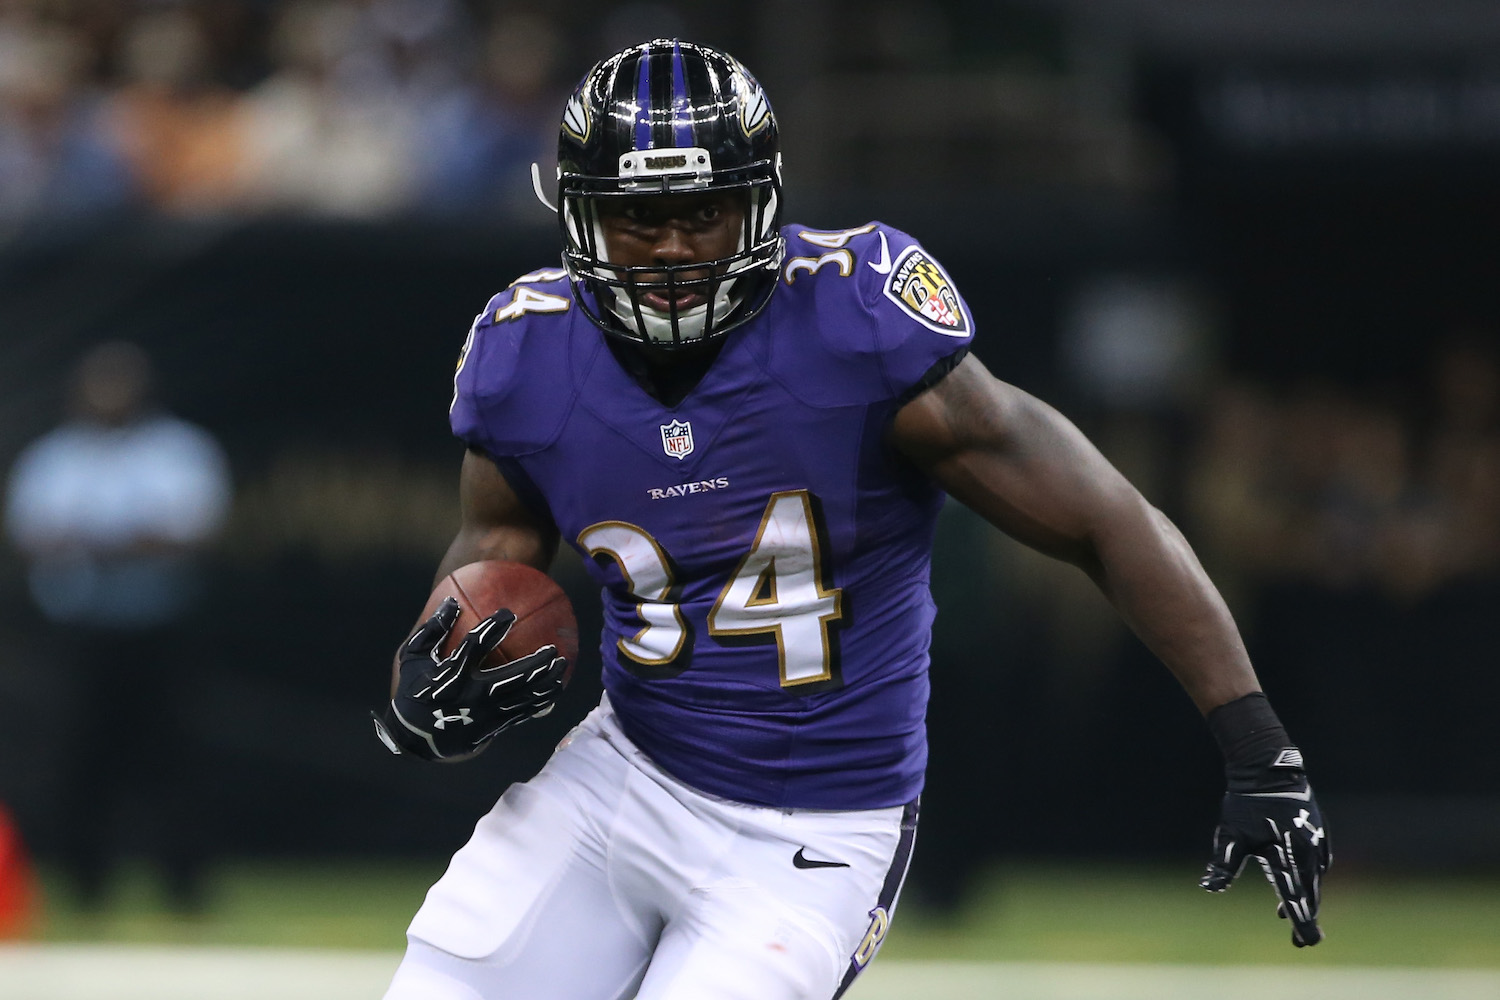 NFL and Baltimore Ravens Shocked by Tragic Death of Former RB Lorenzo Taliaferro at Just 28